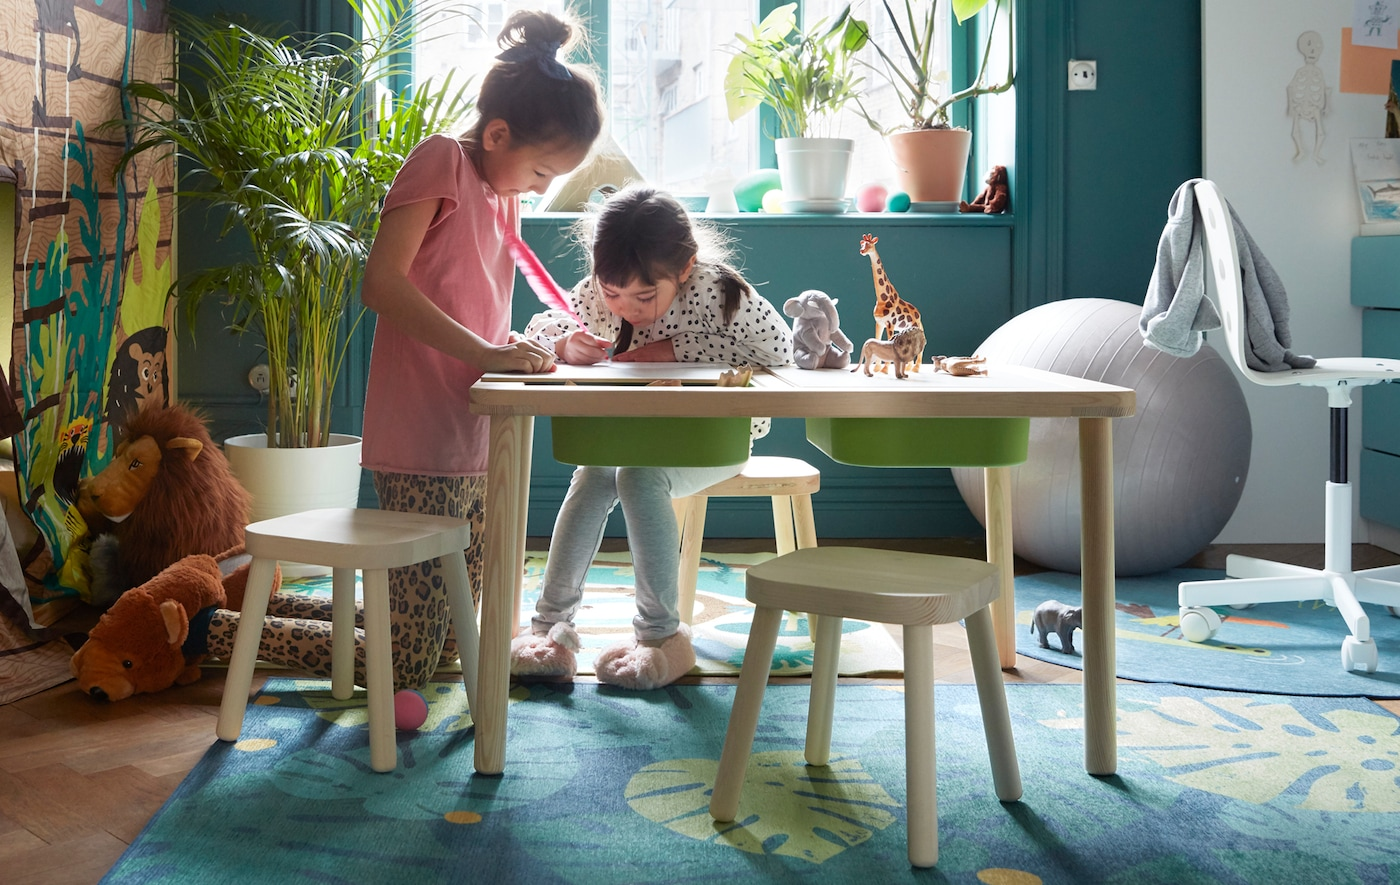 Two young girls doing crafts on a FLISAT children's table